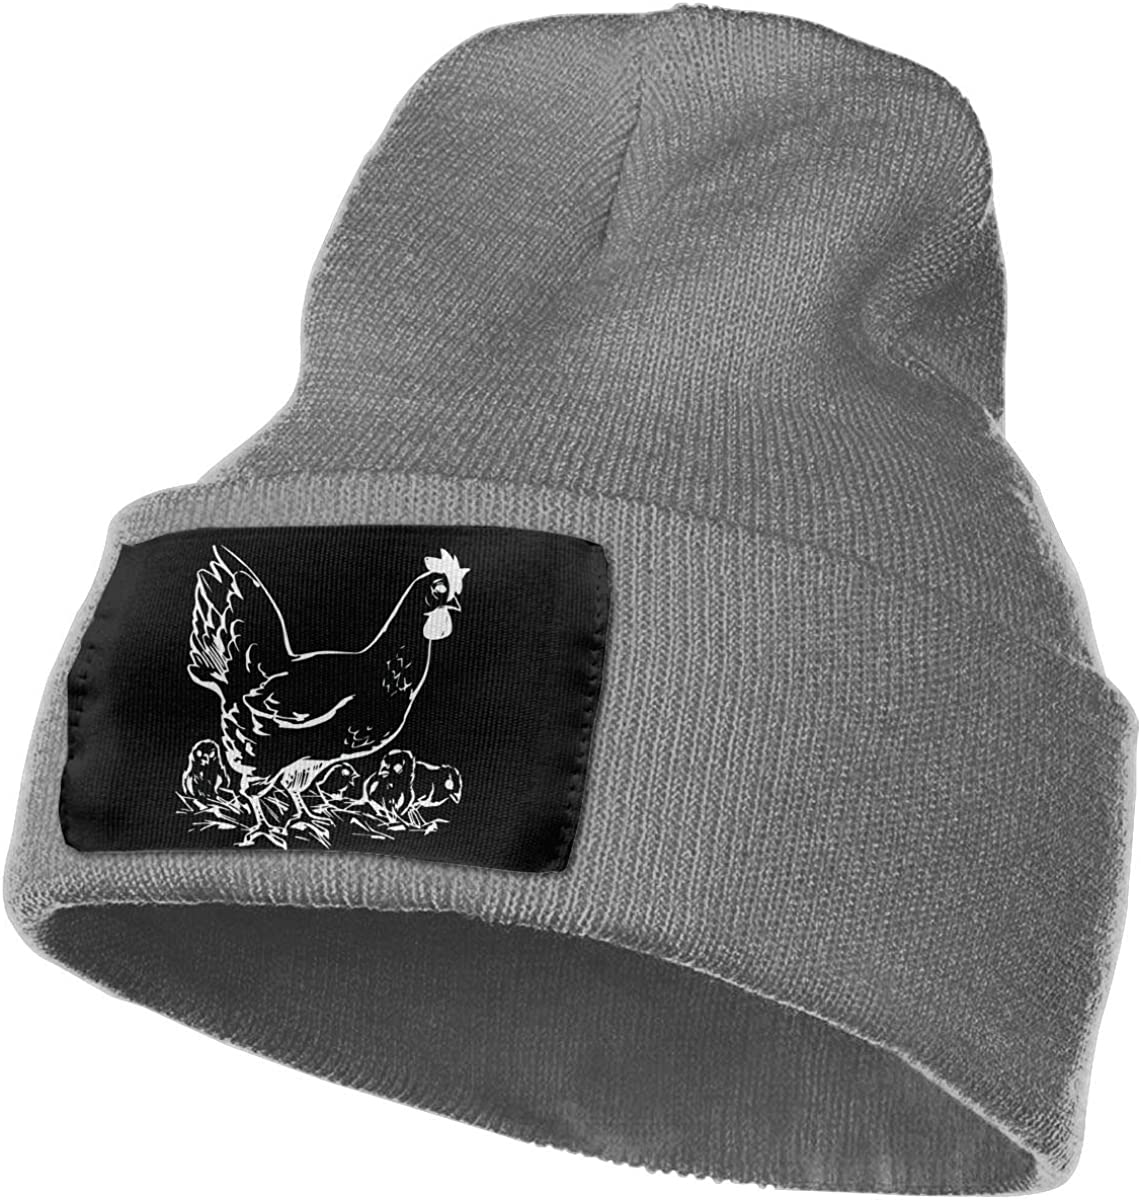 Chickens Men /& Women Knitting Hats Stretchy /& Soft Ski Cap Beanie